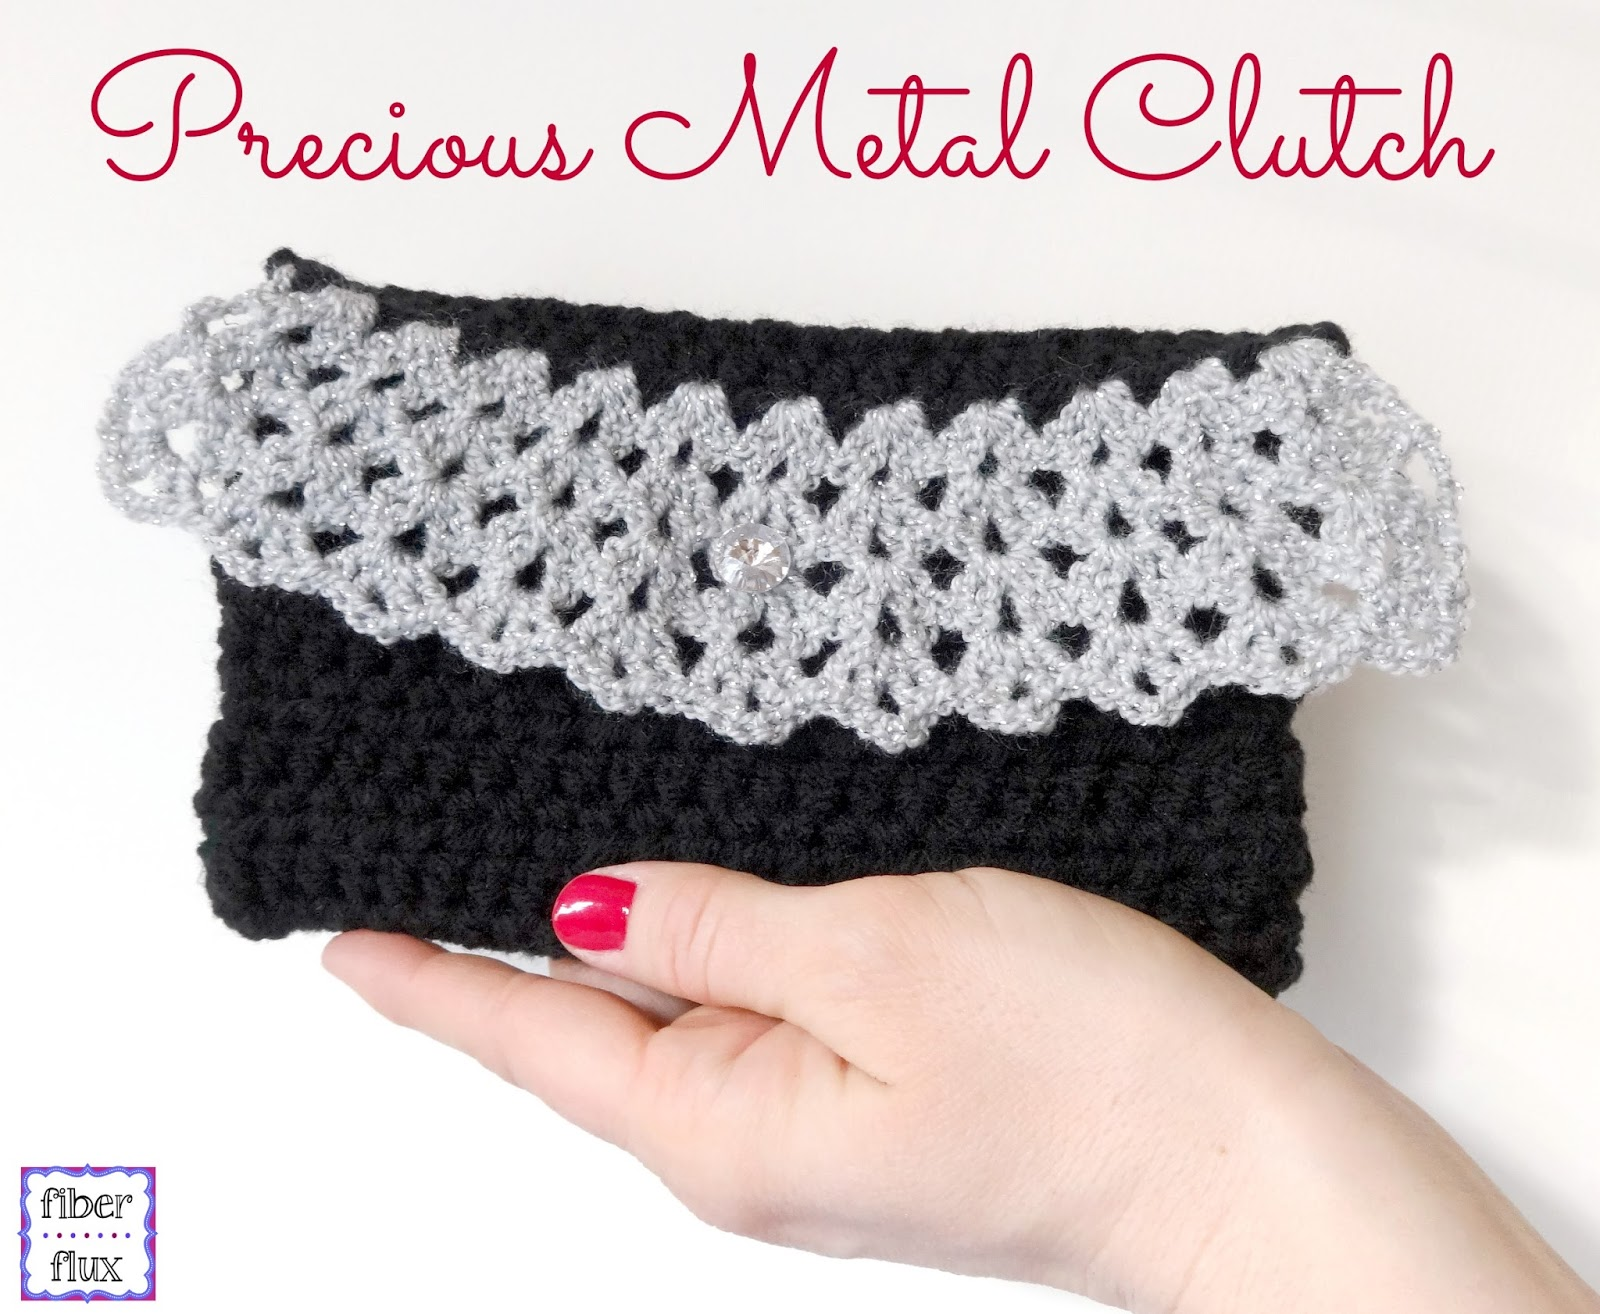 Crochet Clutch Pattern Free : Fiber Flux: Free Crochet Pattern...Precious Metal Clutch!